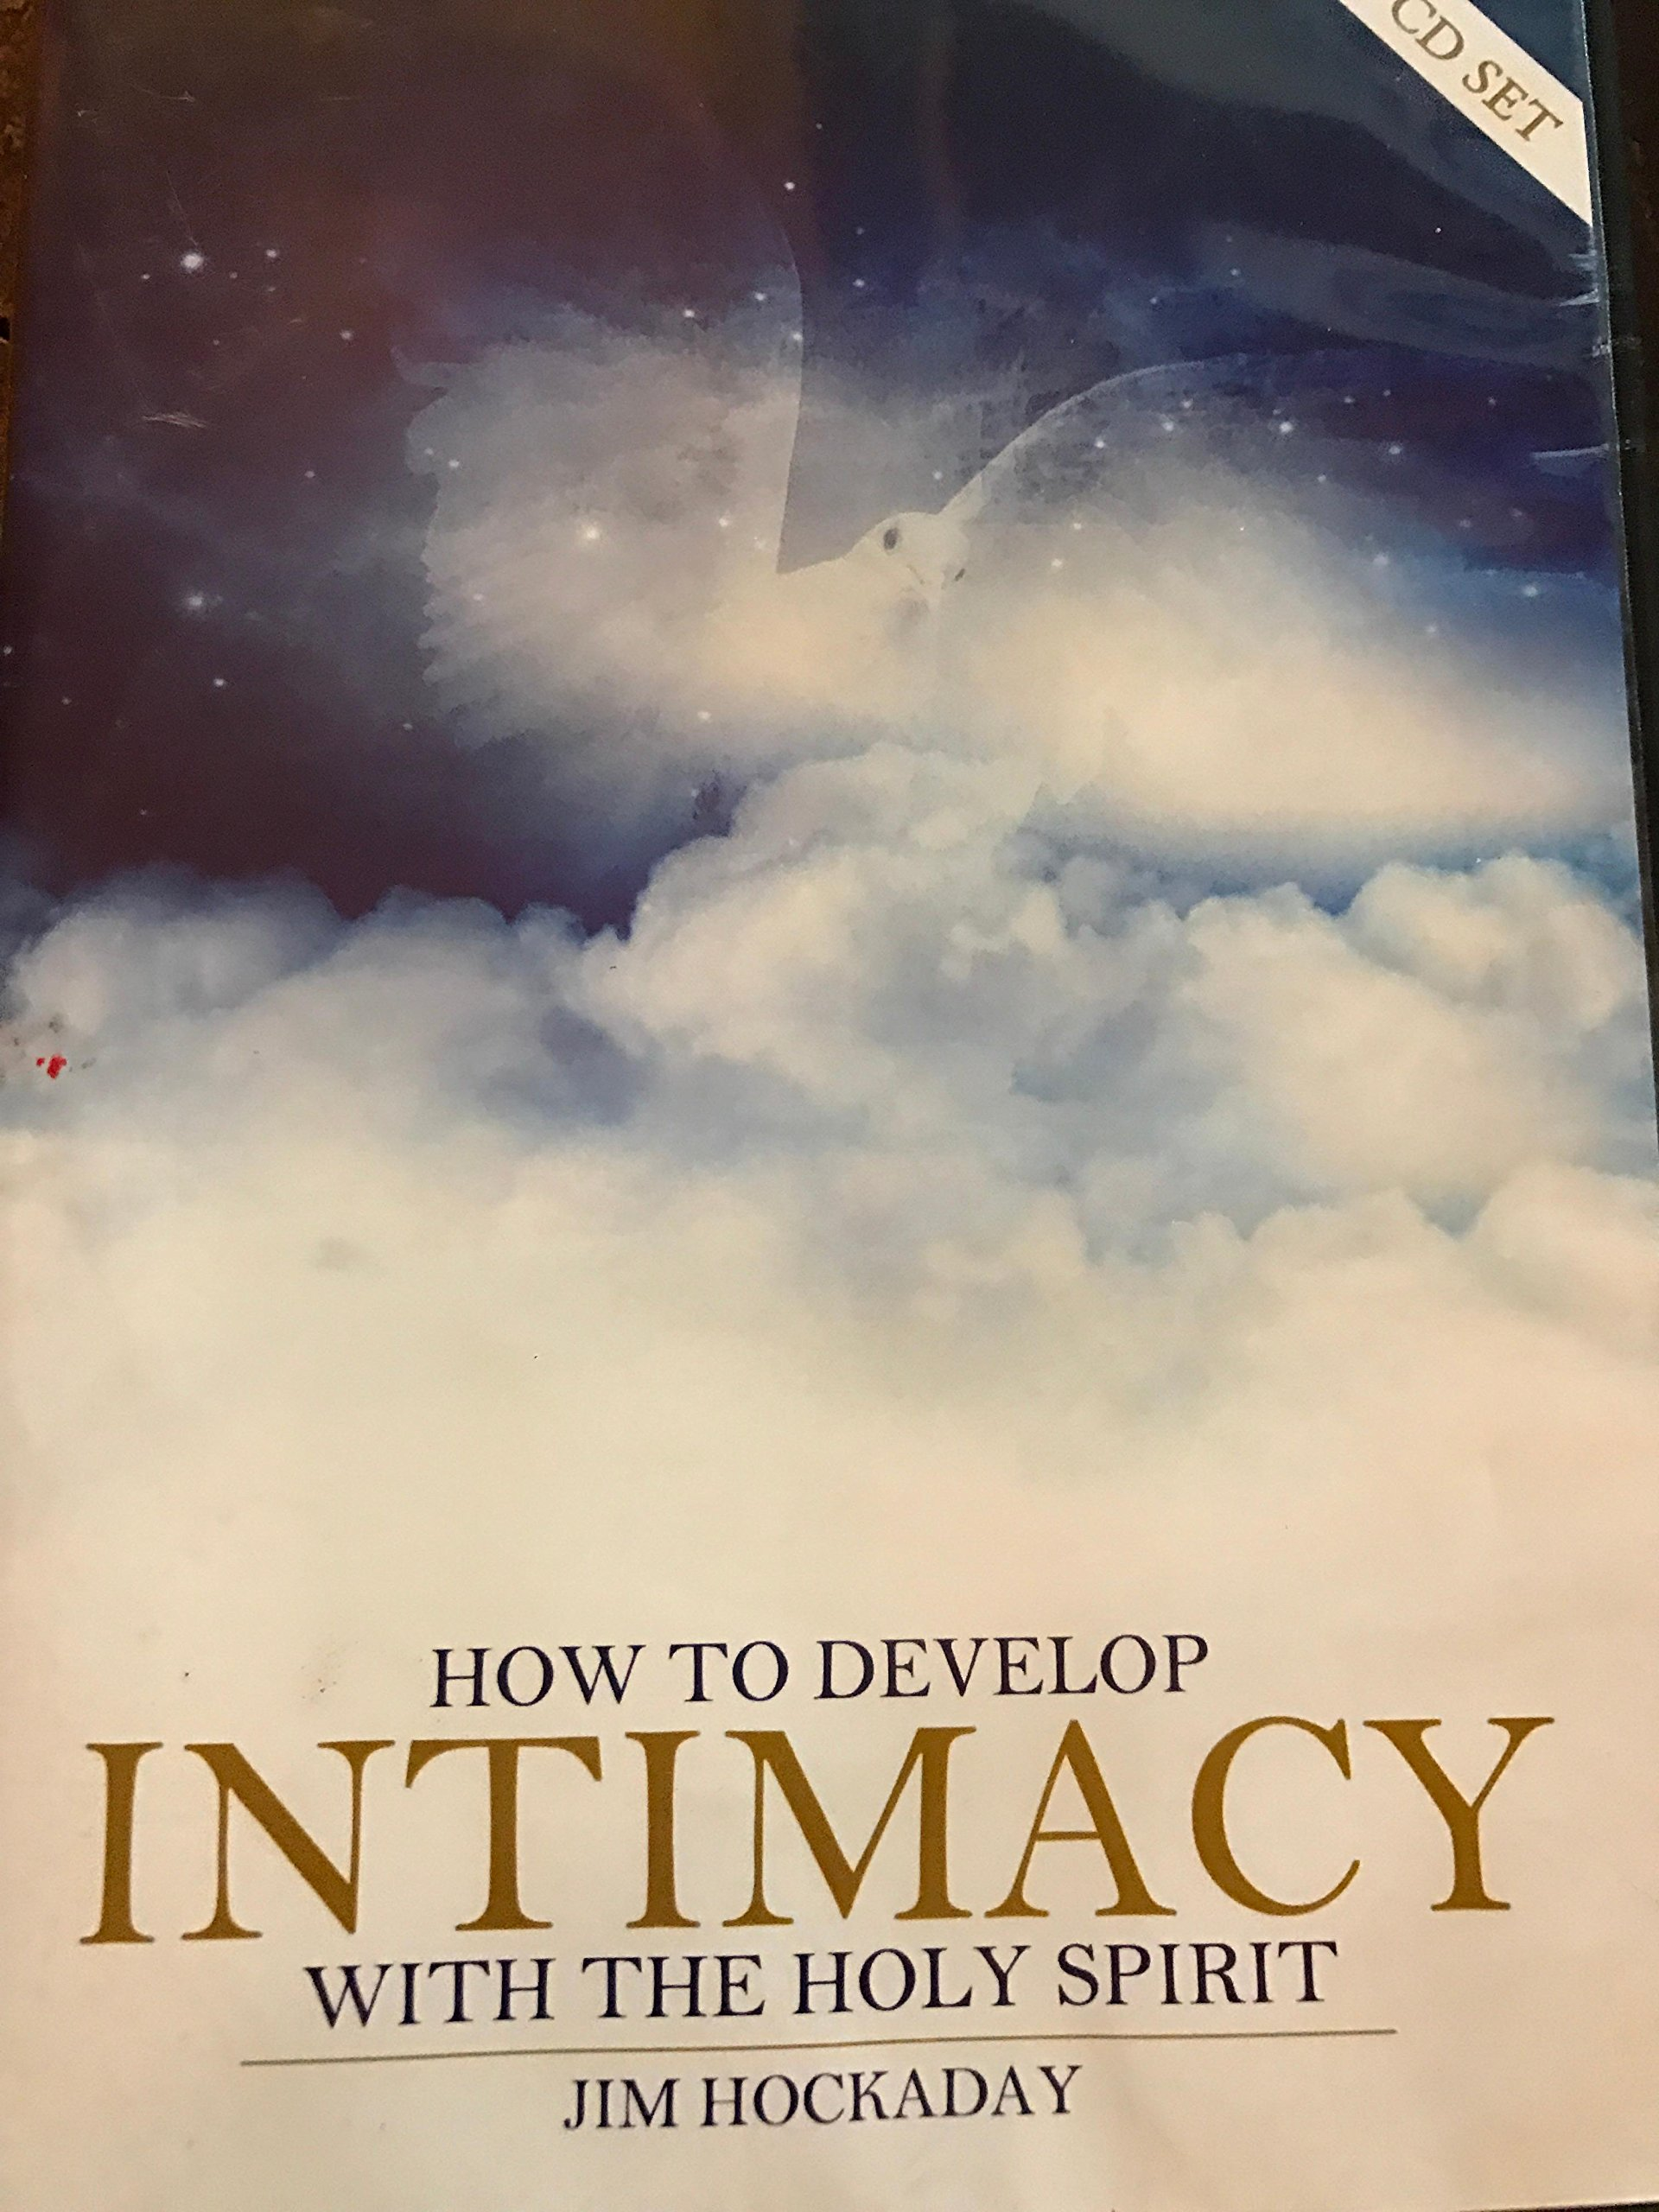 HOW TO DEVELOP INTIMACY WITH THE HOLY SPIRIT 6 AUDIO CD pdf